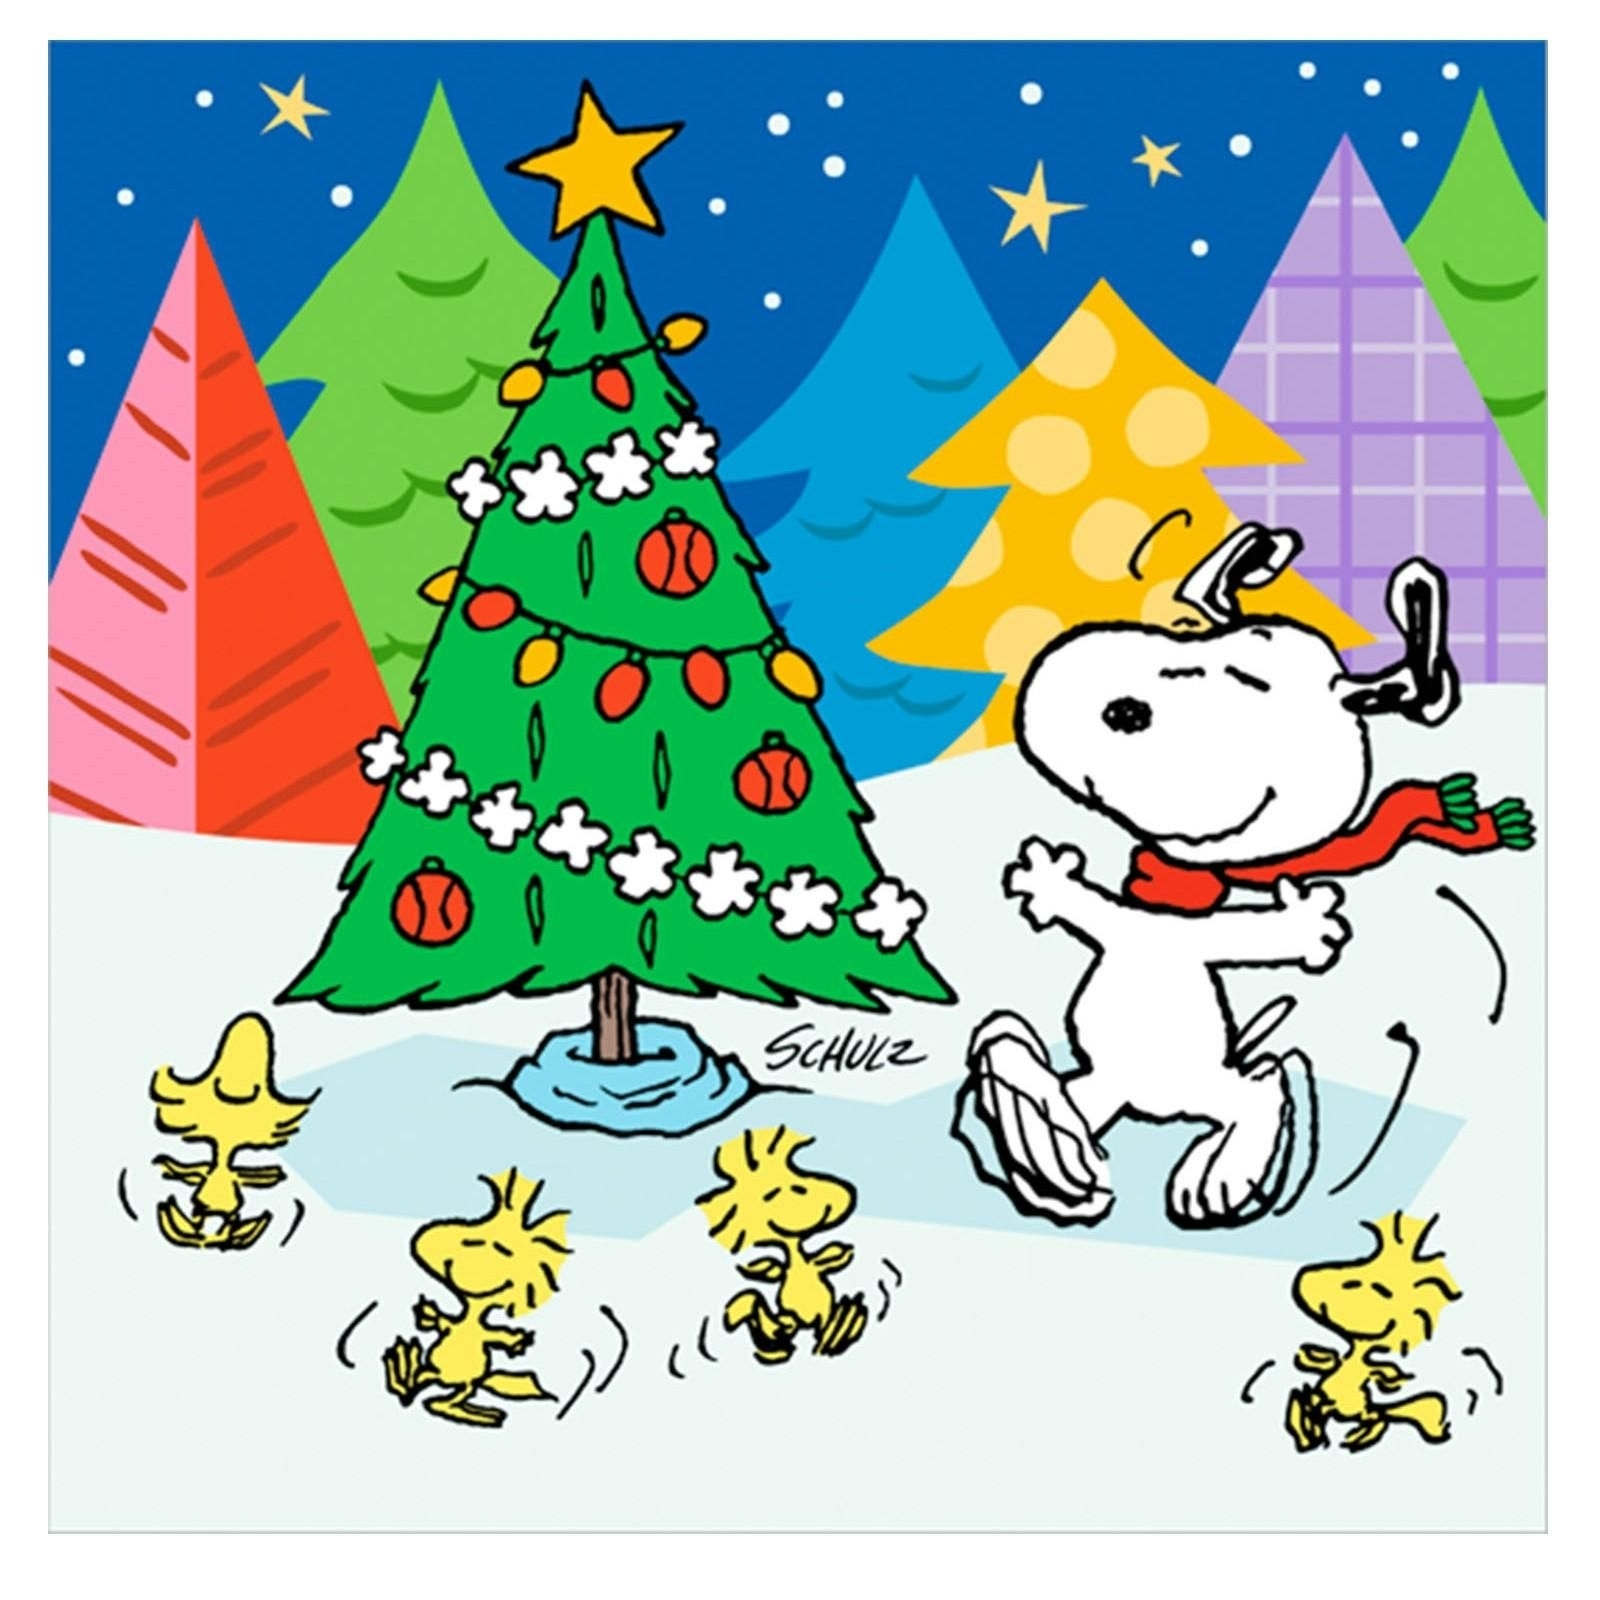 image detail for -snoopy-christmas-64742438736#snoopy